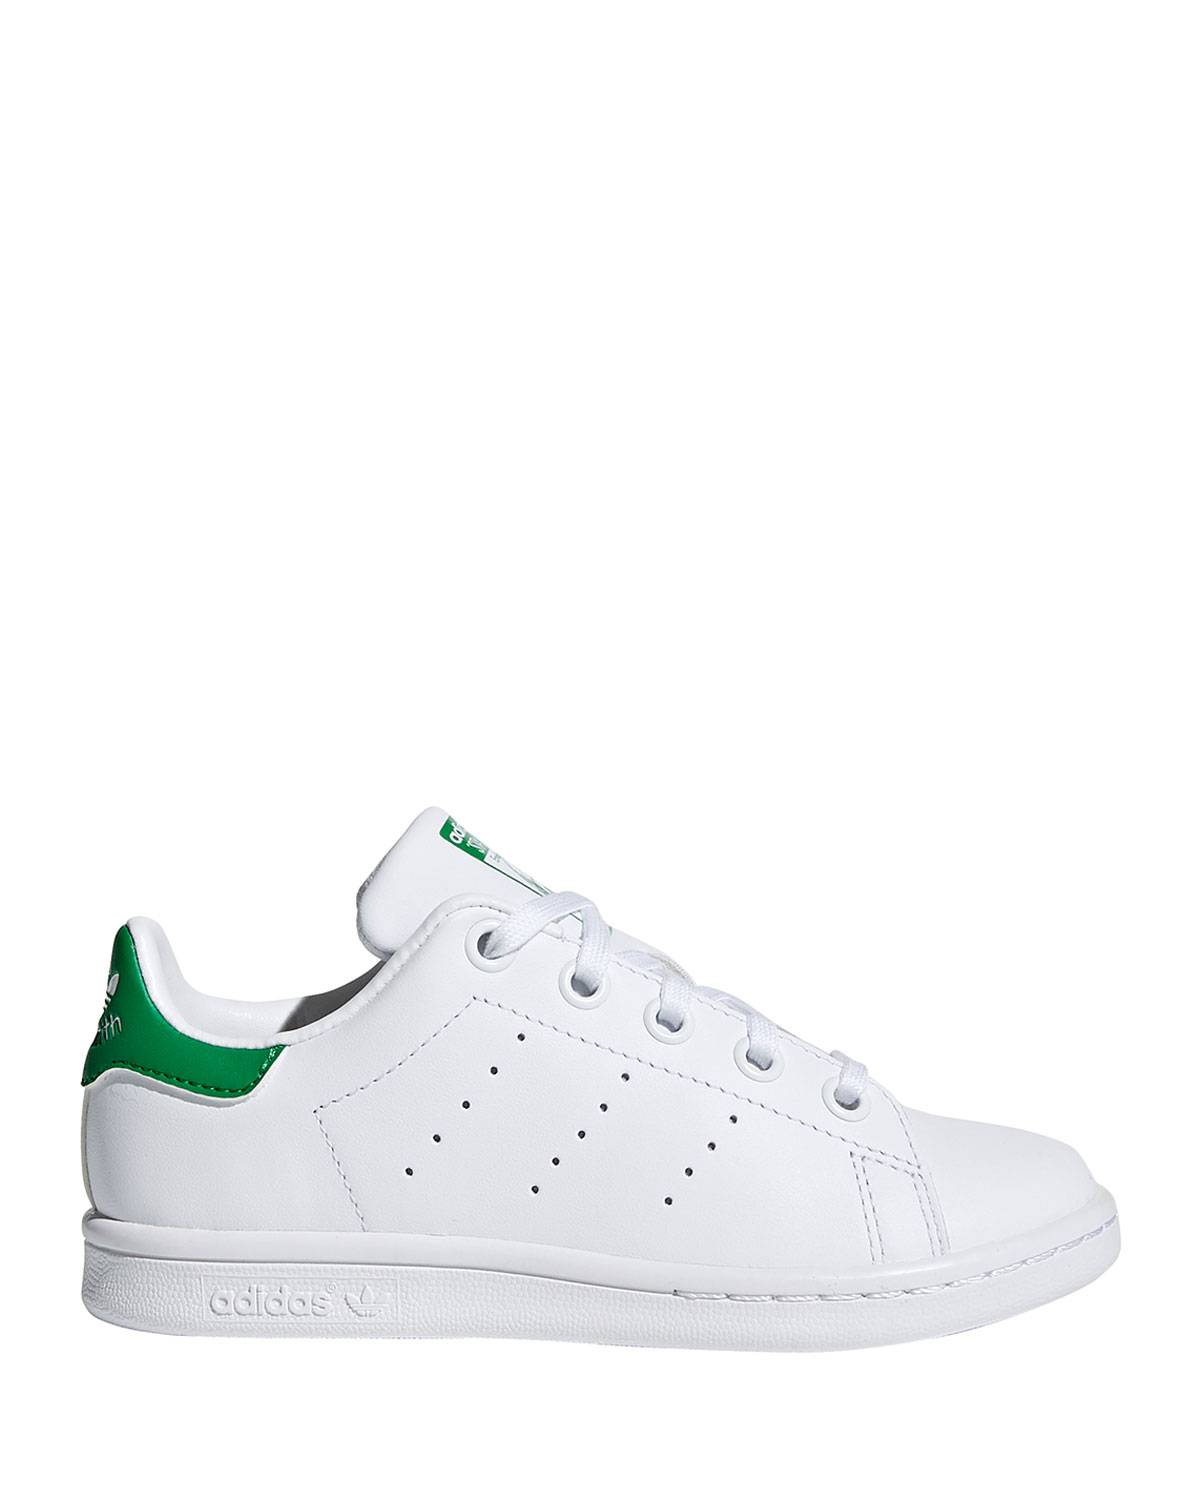 Adidas Kids' Stan Smith Classic Sneakers, Toddler/Kids